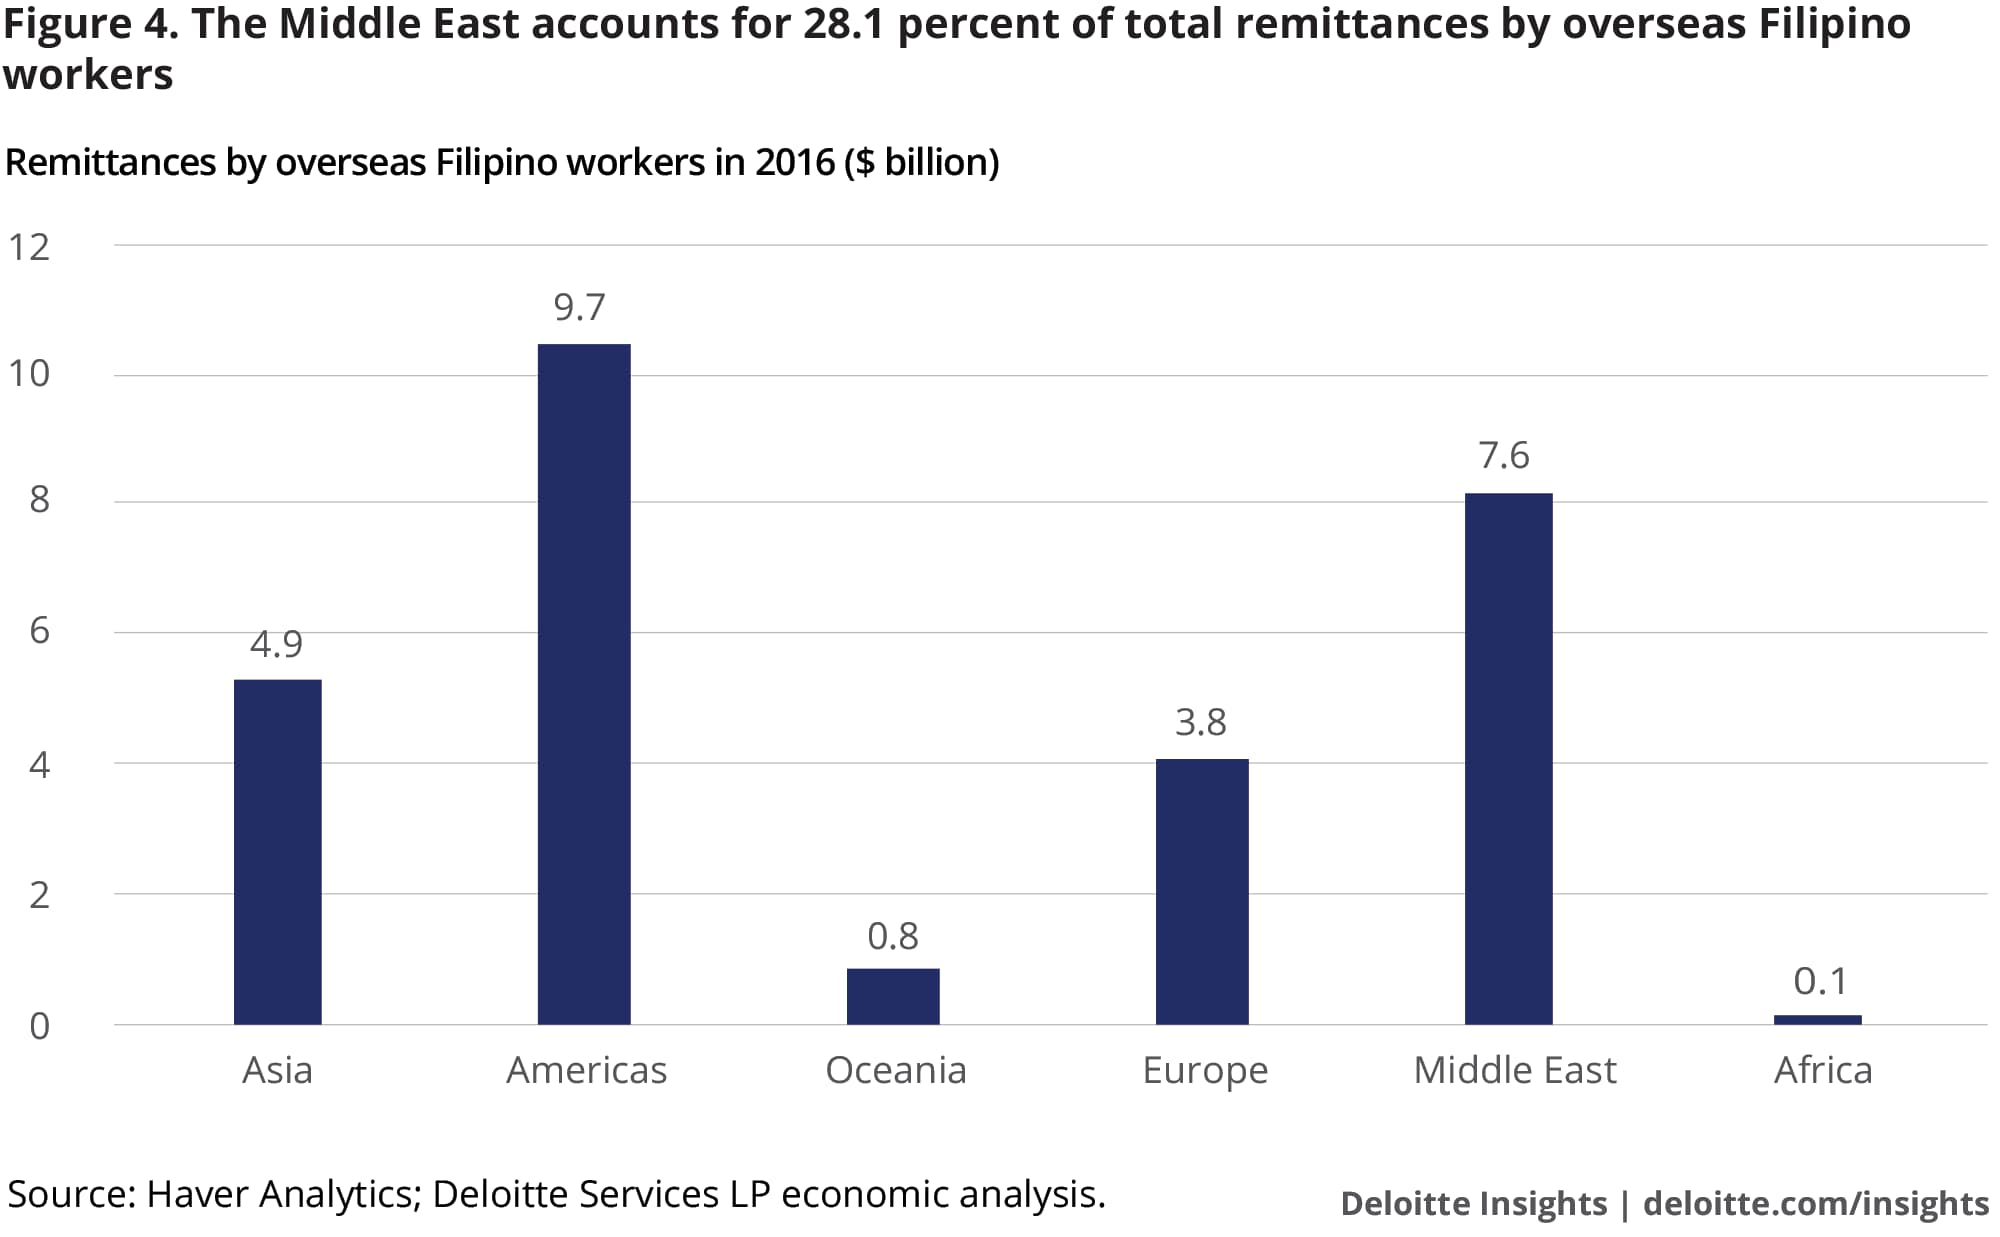 The Middle East accounts for 28.1 percent of total remittances by overseas Filipino workers